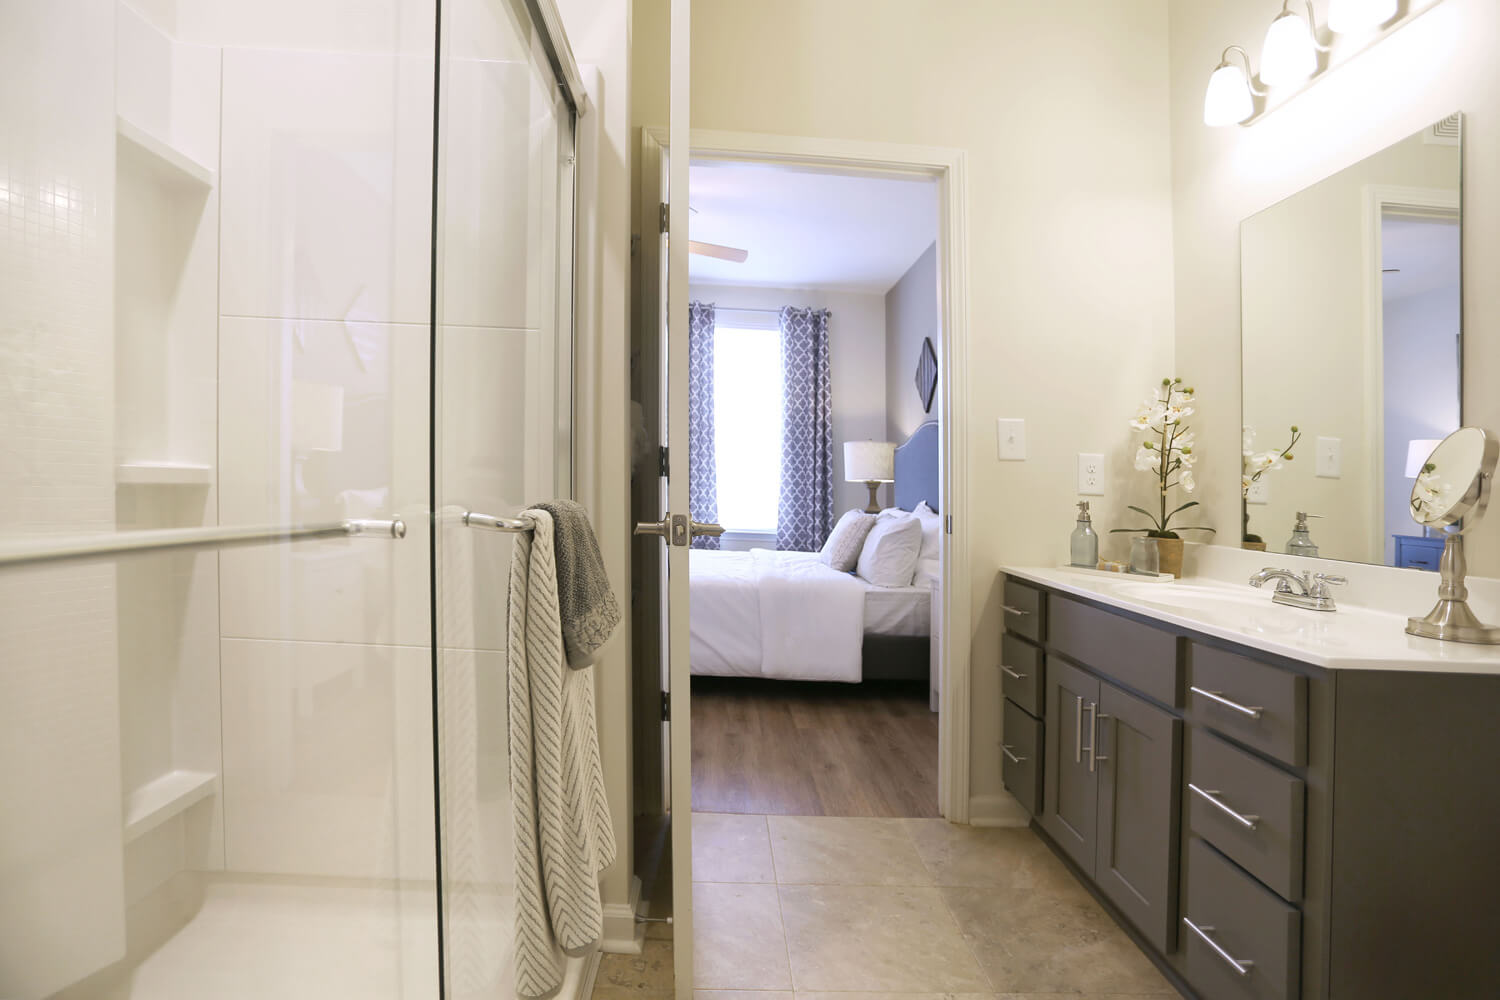 The Morgan Apartments Designed by Foshee Architecture - View of Master Bathroom